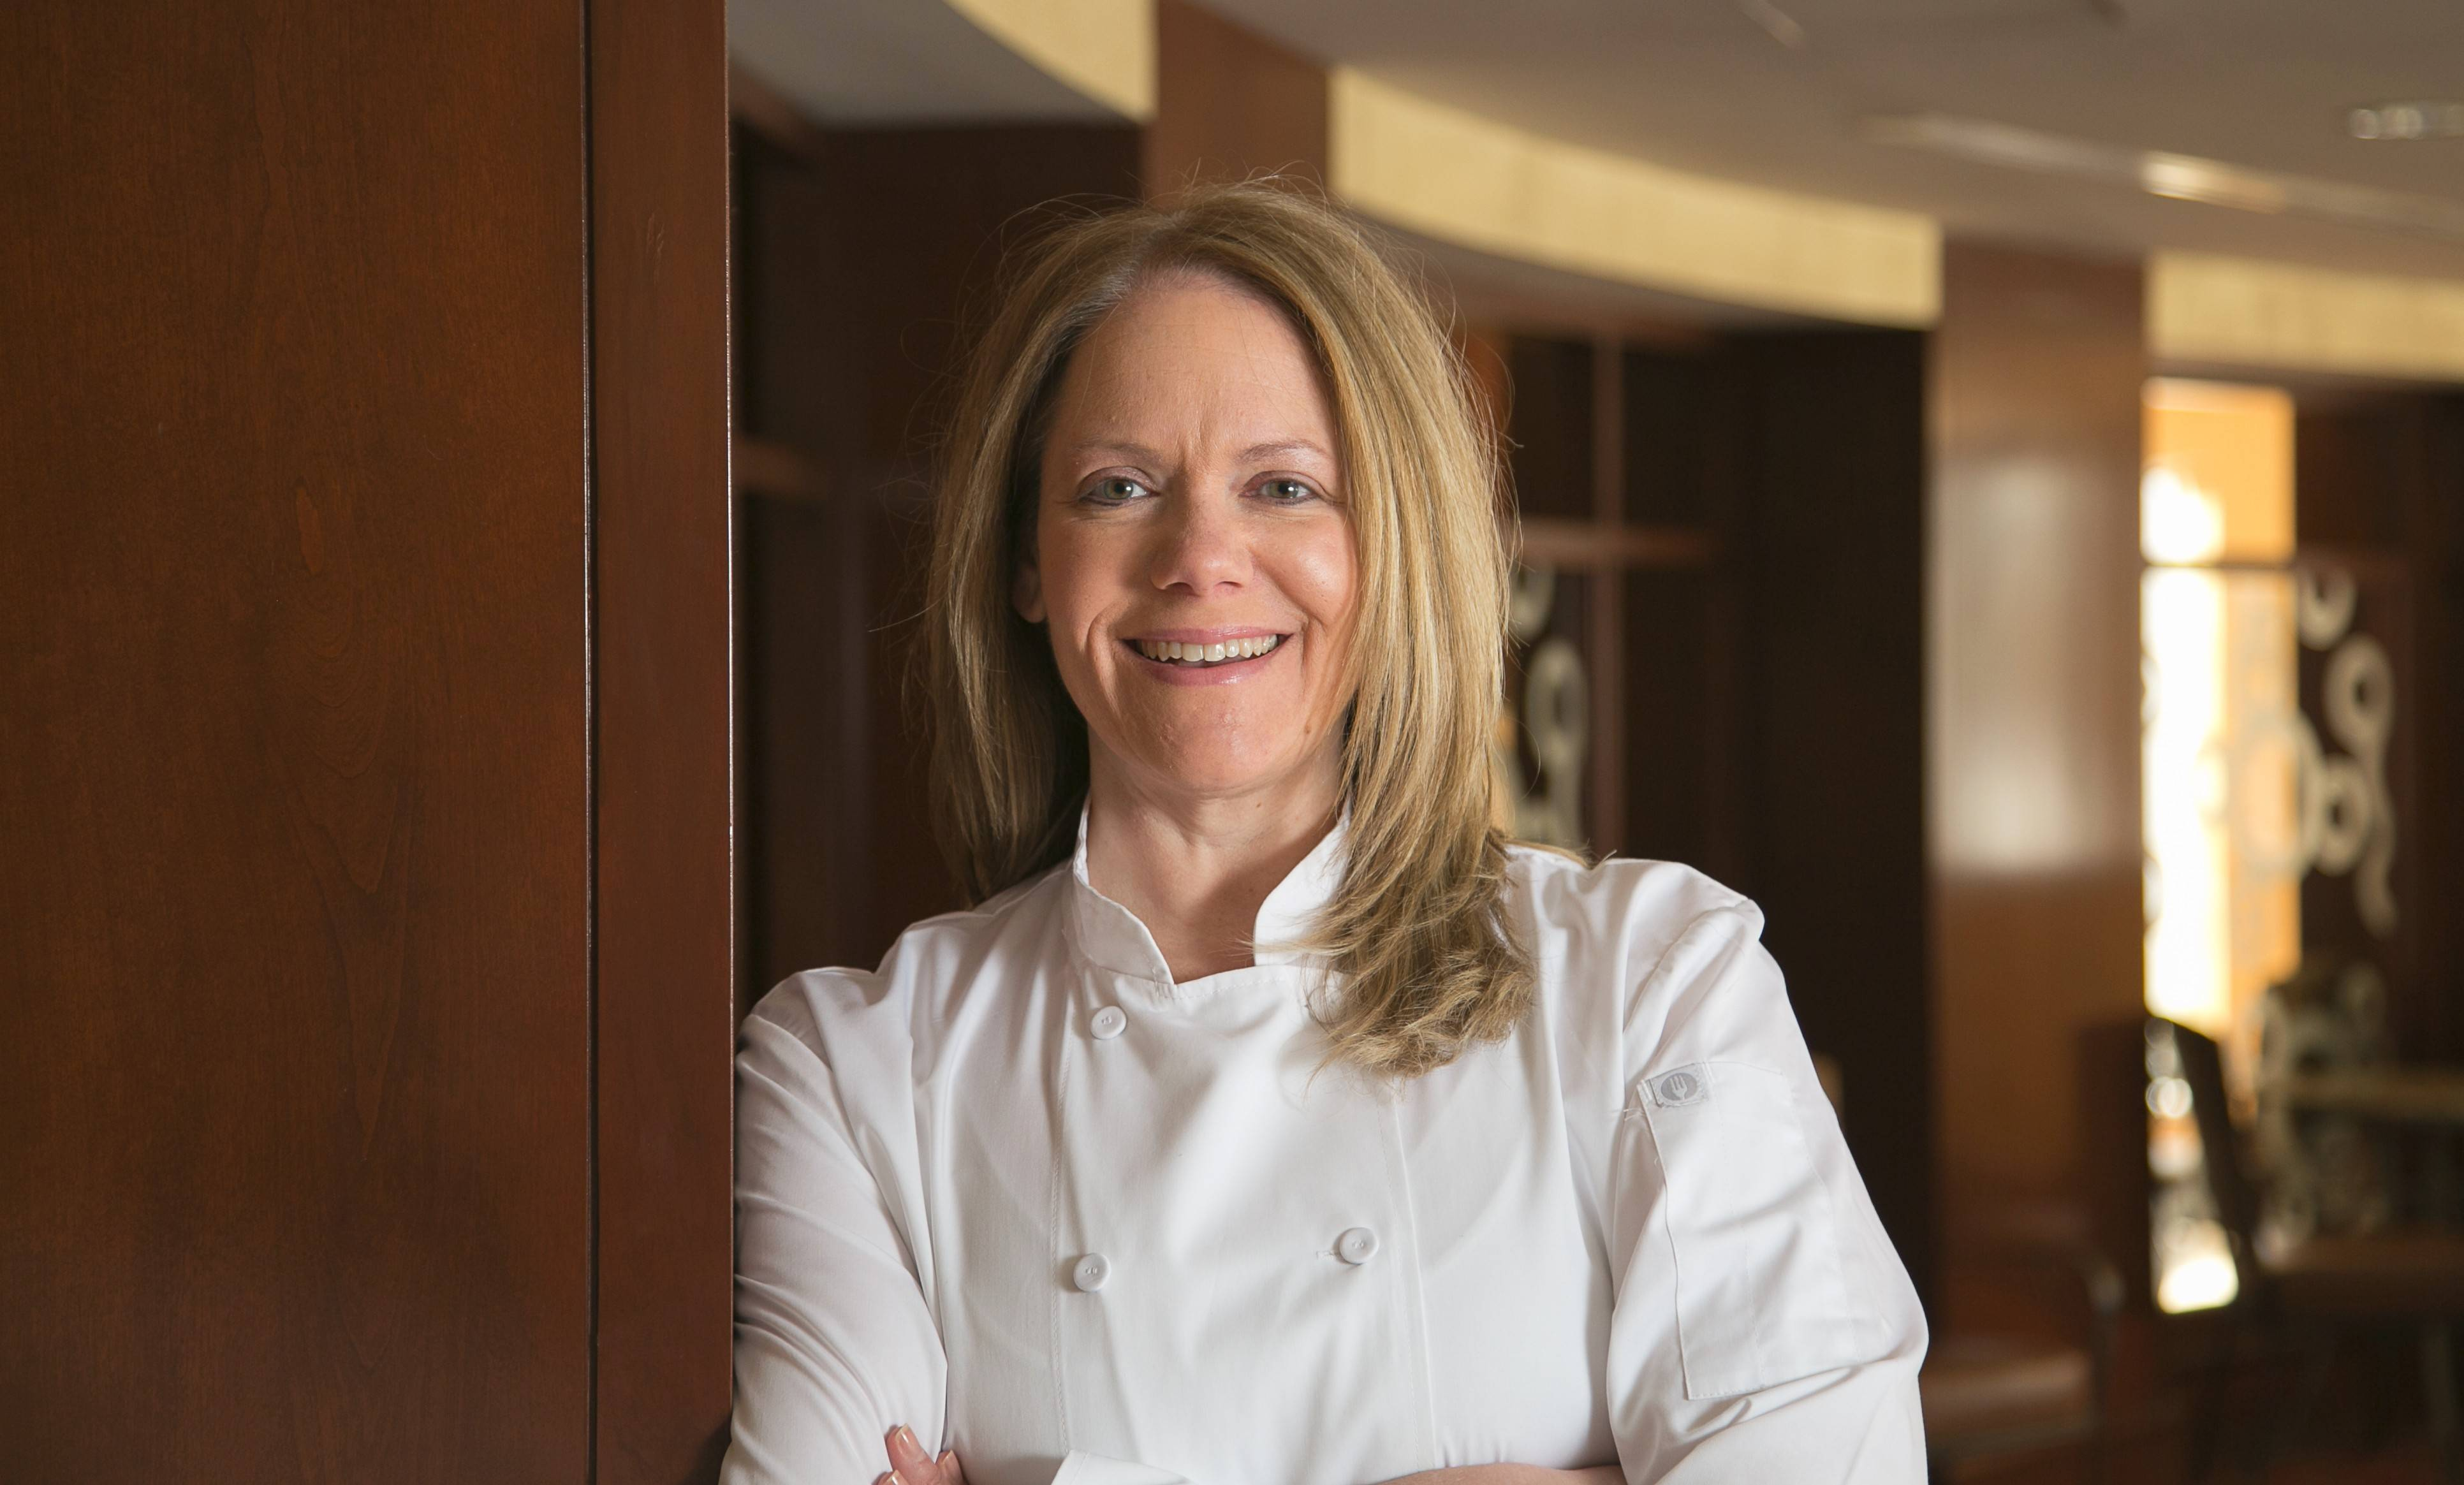 Chef Carol Buckantz recently took over at the Oak Brook Hills Resort.